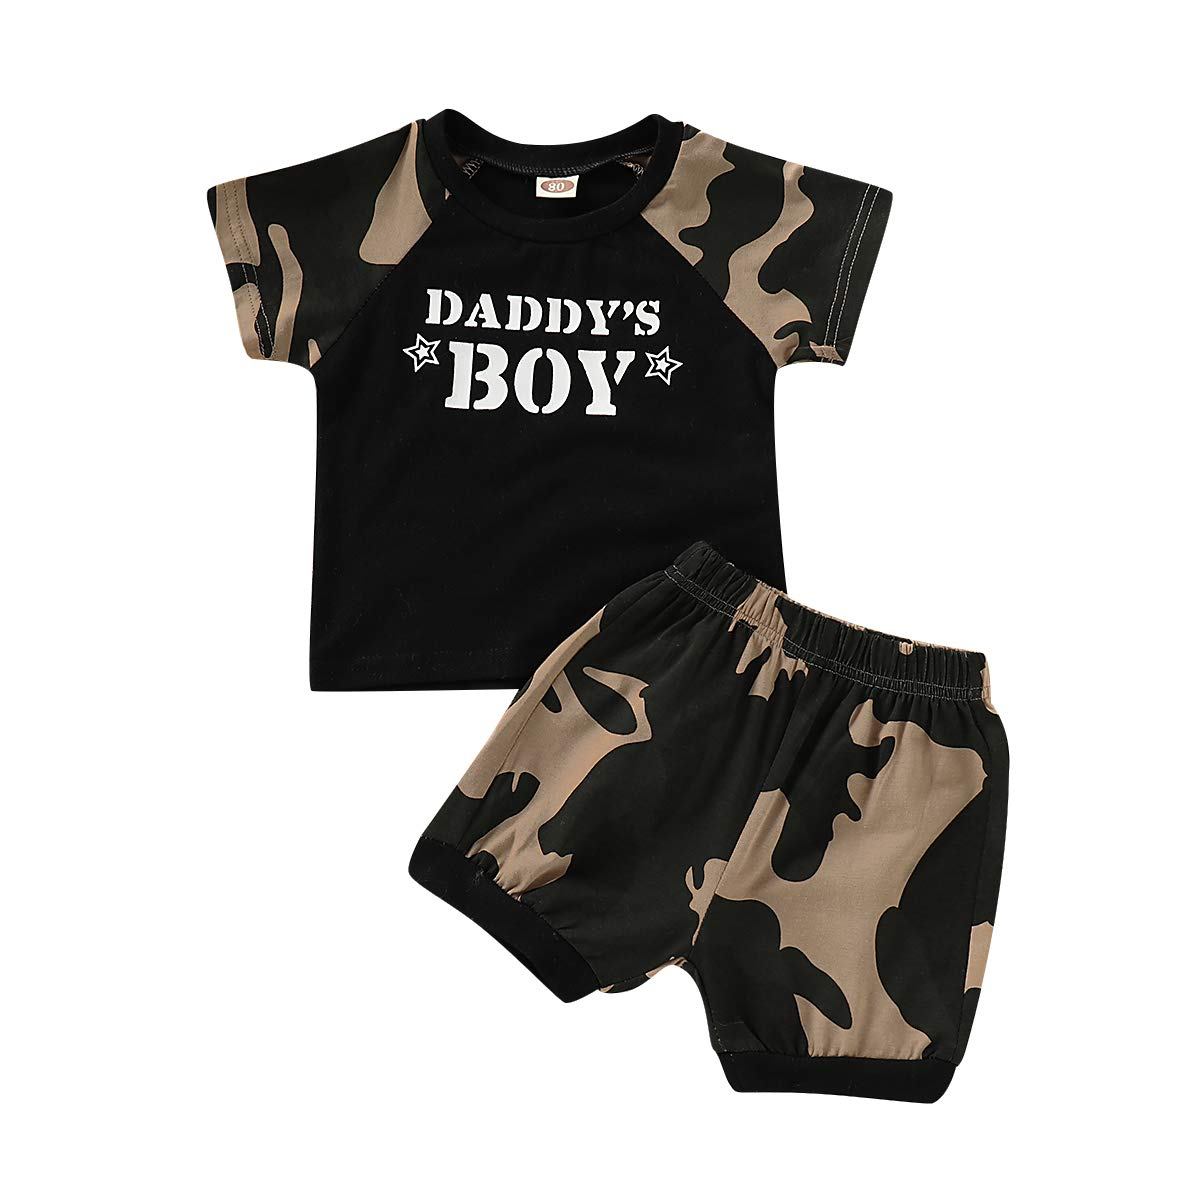 Toddler Baby Boy Summer Outfits Shark and Doo Doo Print Sleeveless Vest Shorts Cotton Boy Clothes Set 2 Packs